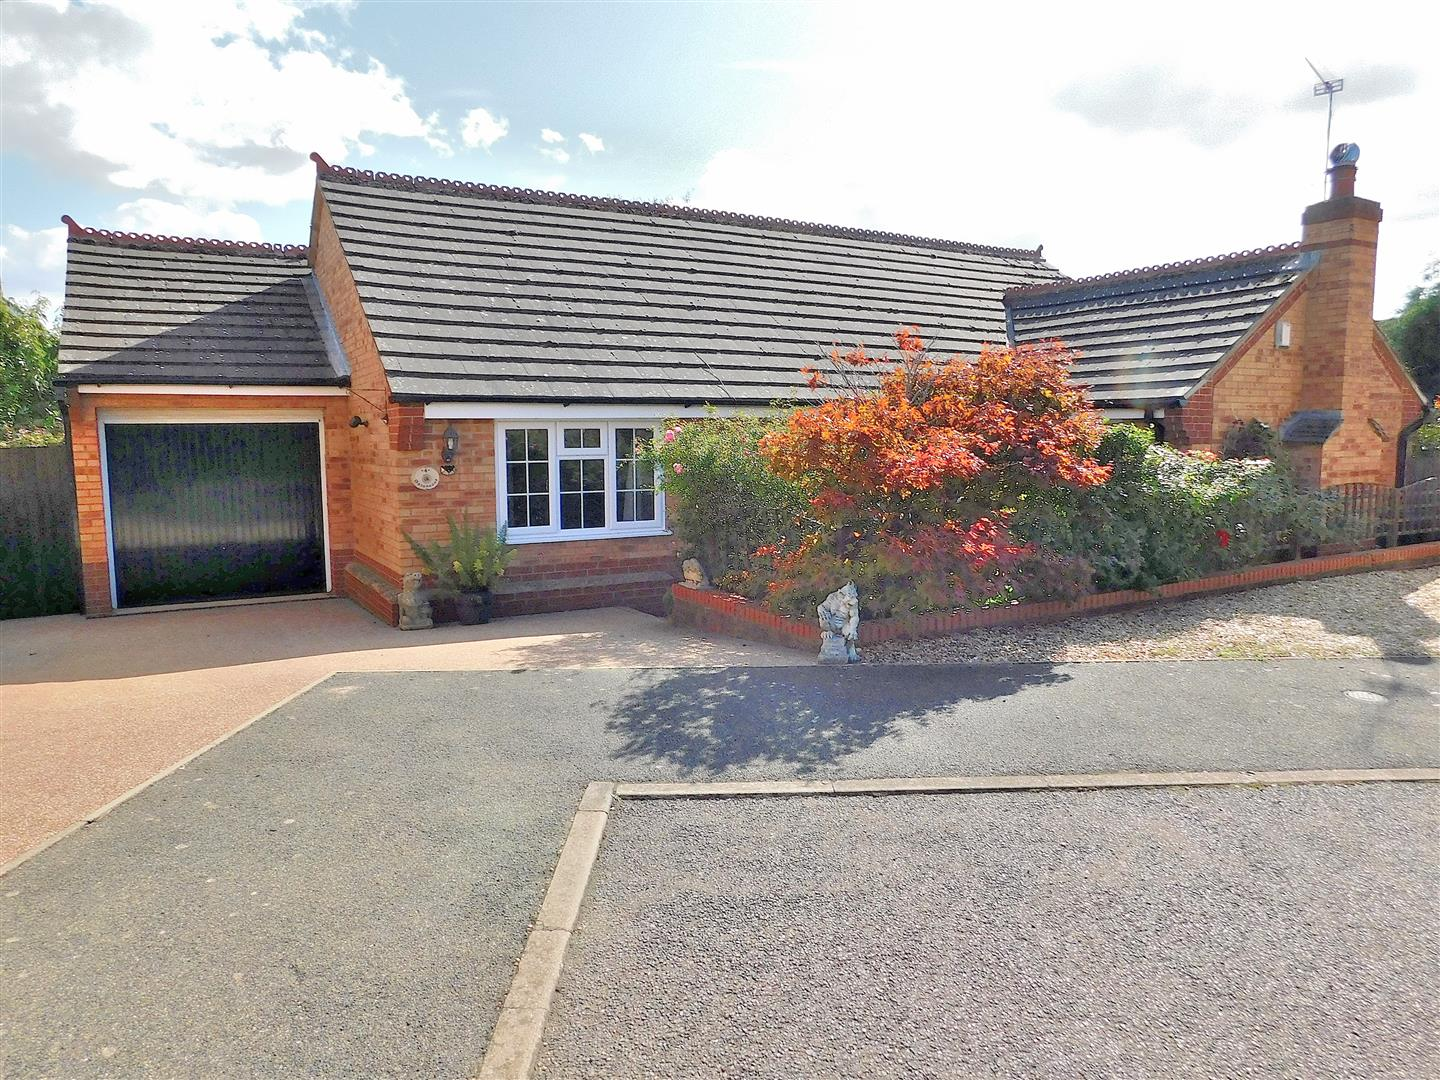 3 bed detached bungalow for sale in King's Lynn, PE34 4JT, PE34